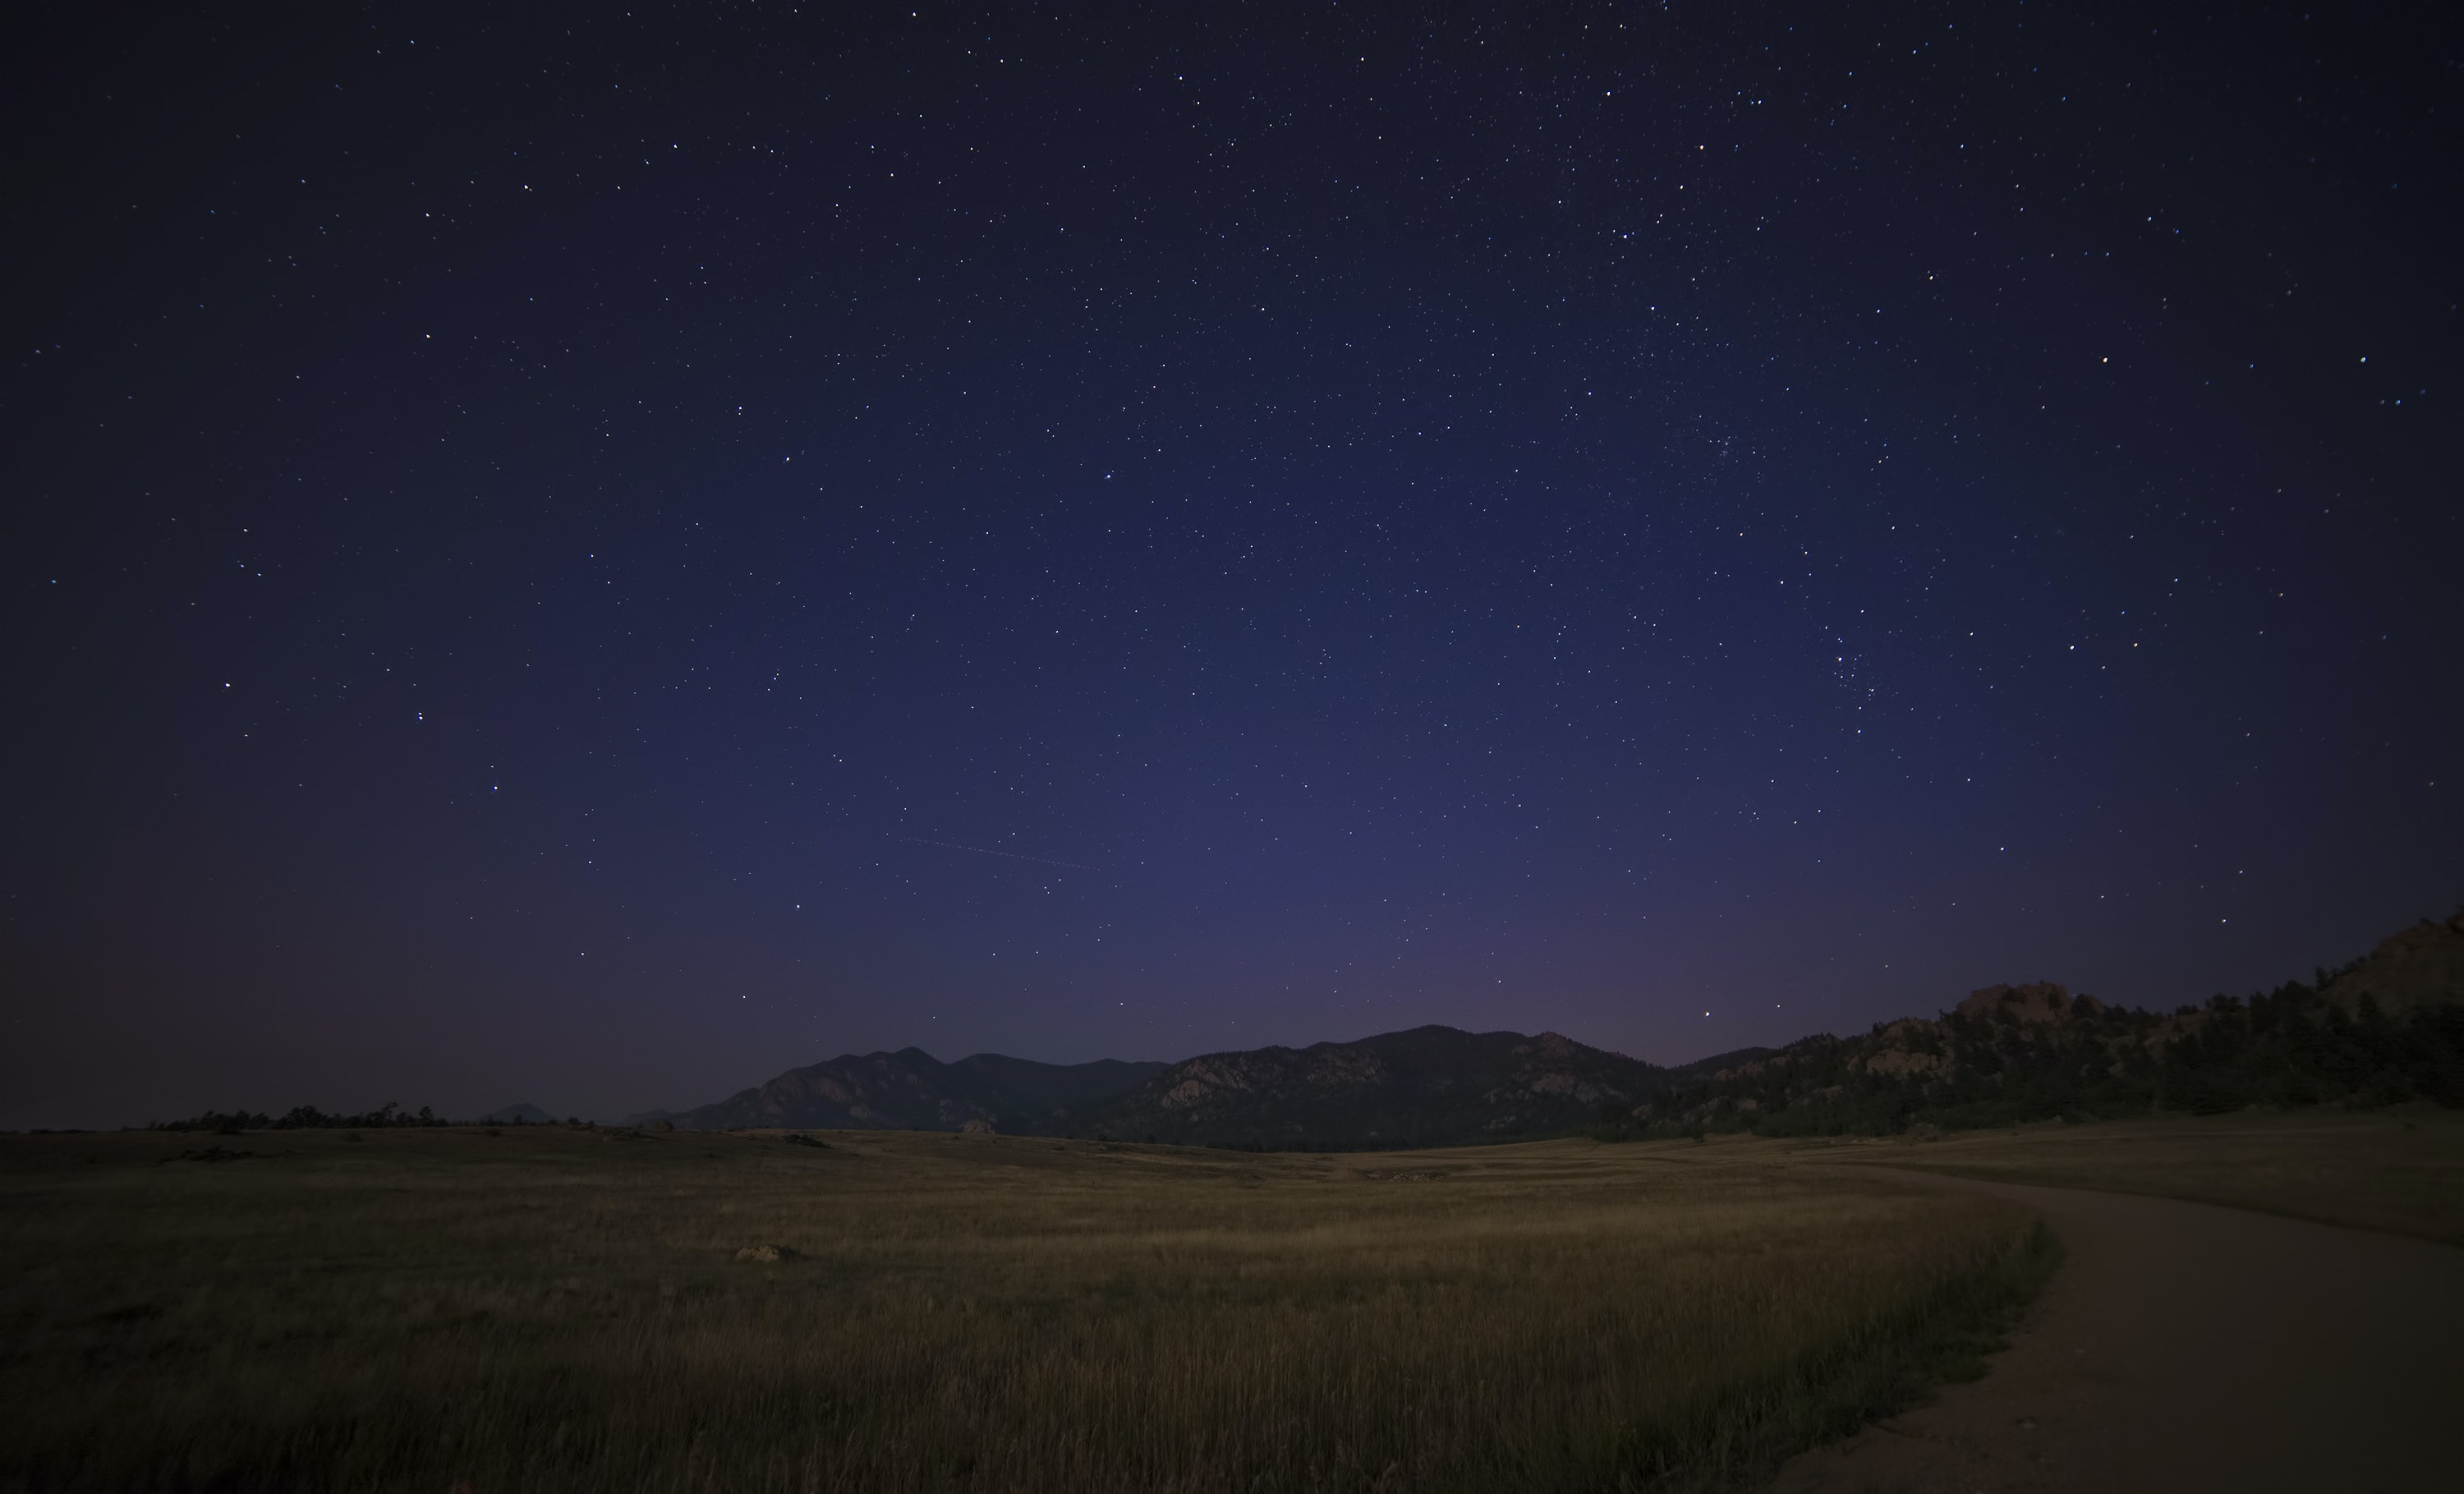 A country road with mountains in the distance under a starry night in Colorado.